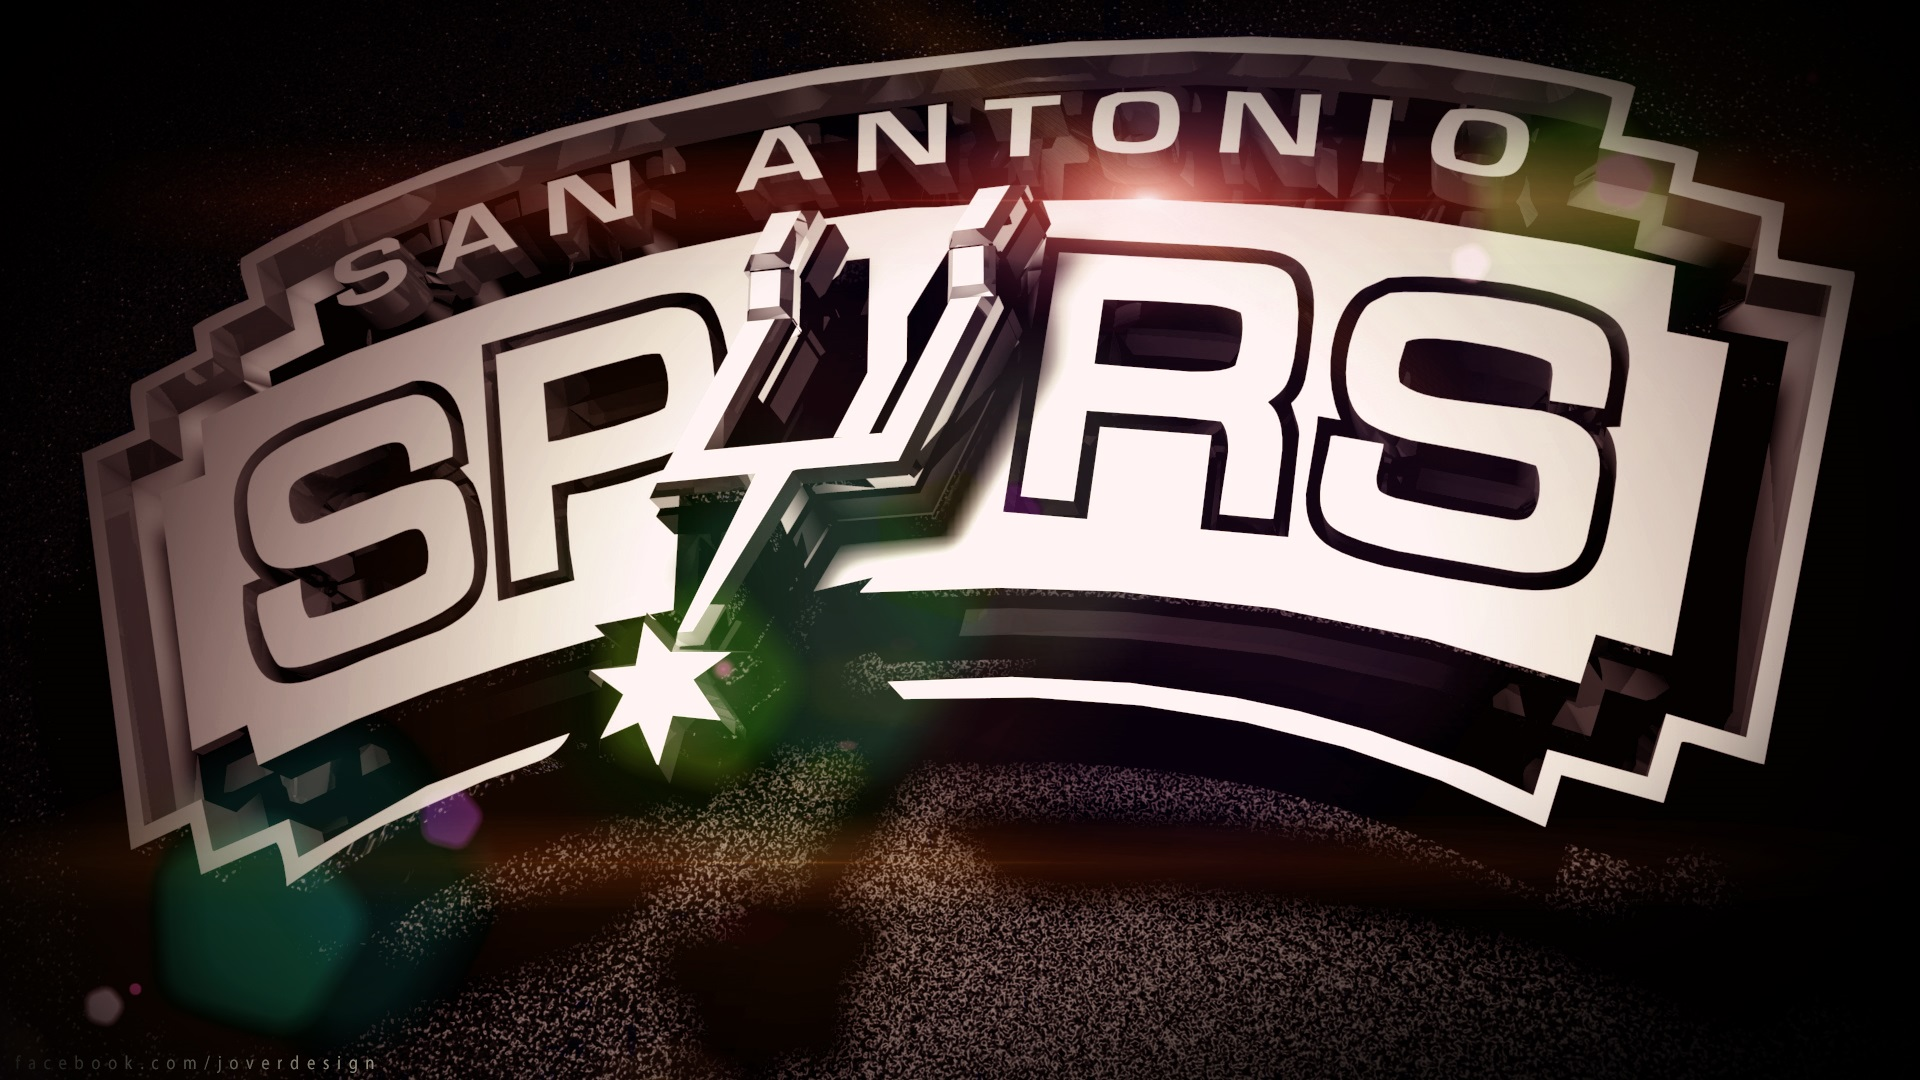 1920x1080 - San Antonio Spurs Wallpapers 23